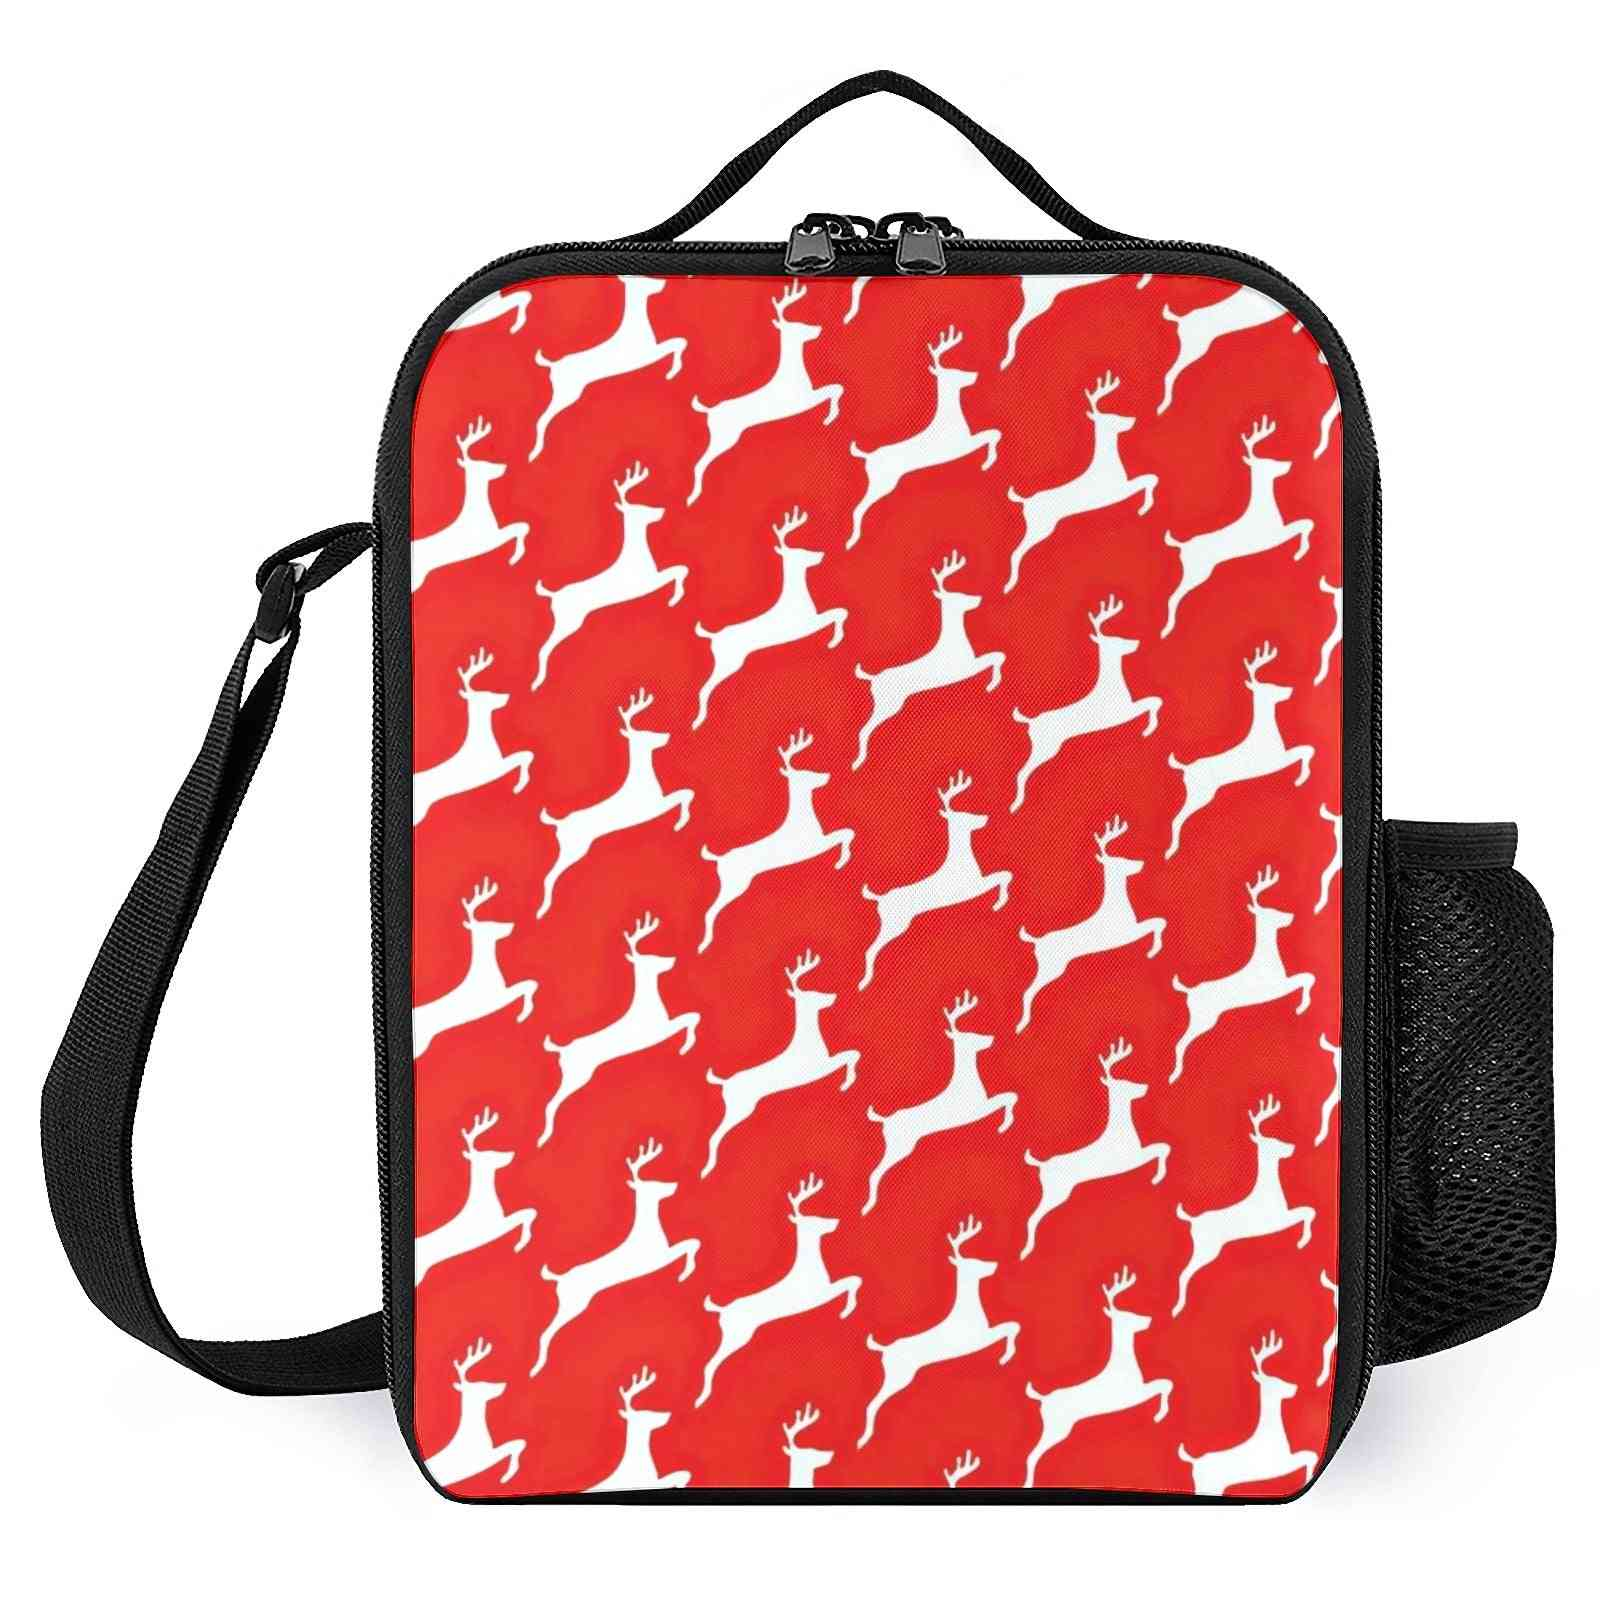 Leak-proof & Thermal Insulated Lunch Bags